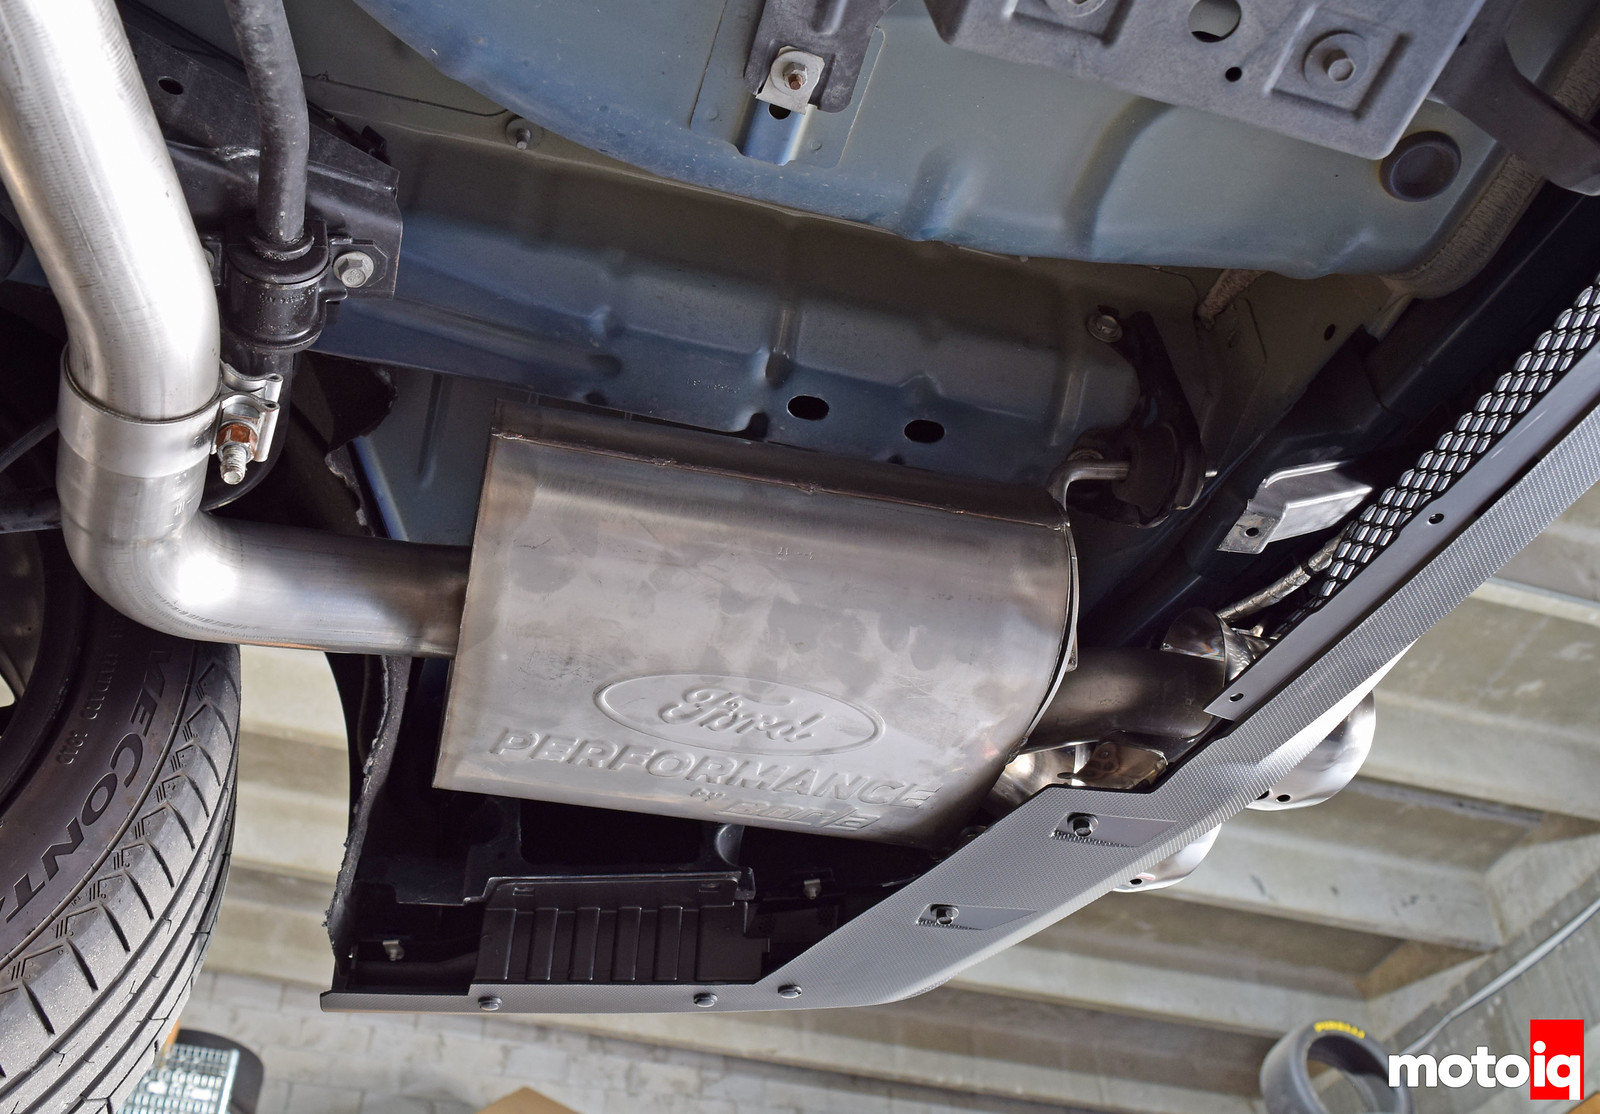 Exhaust mounting